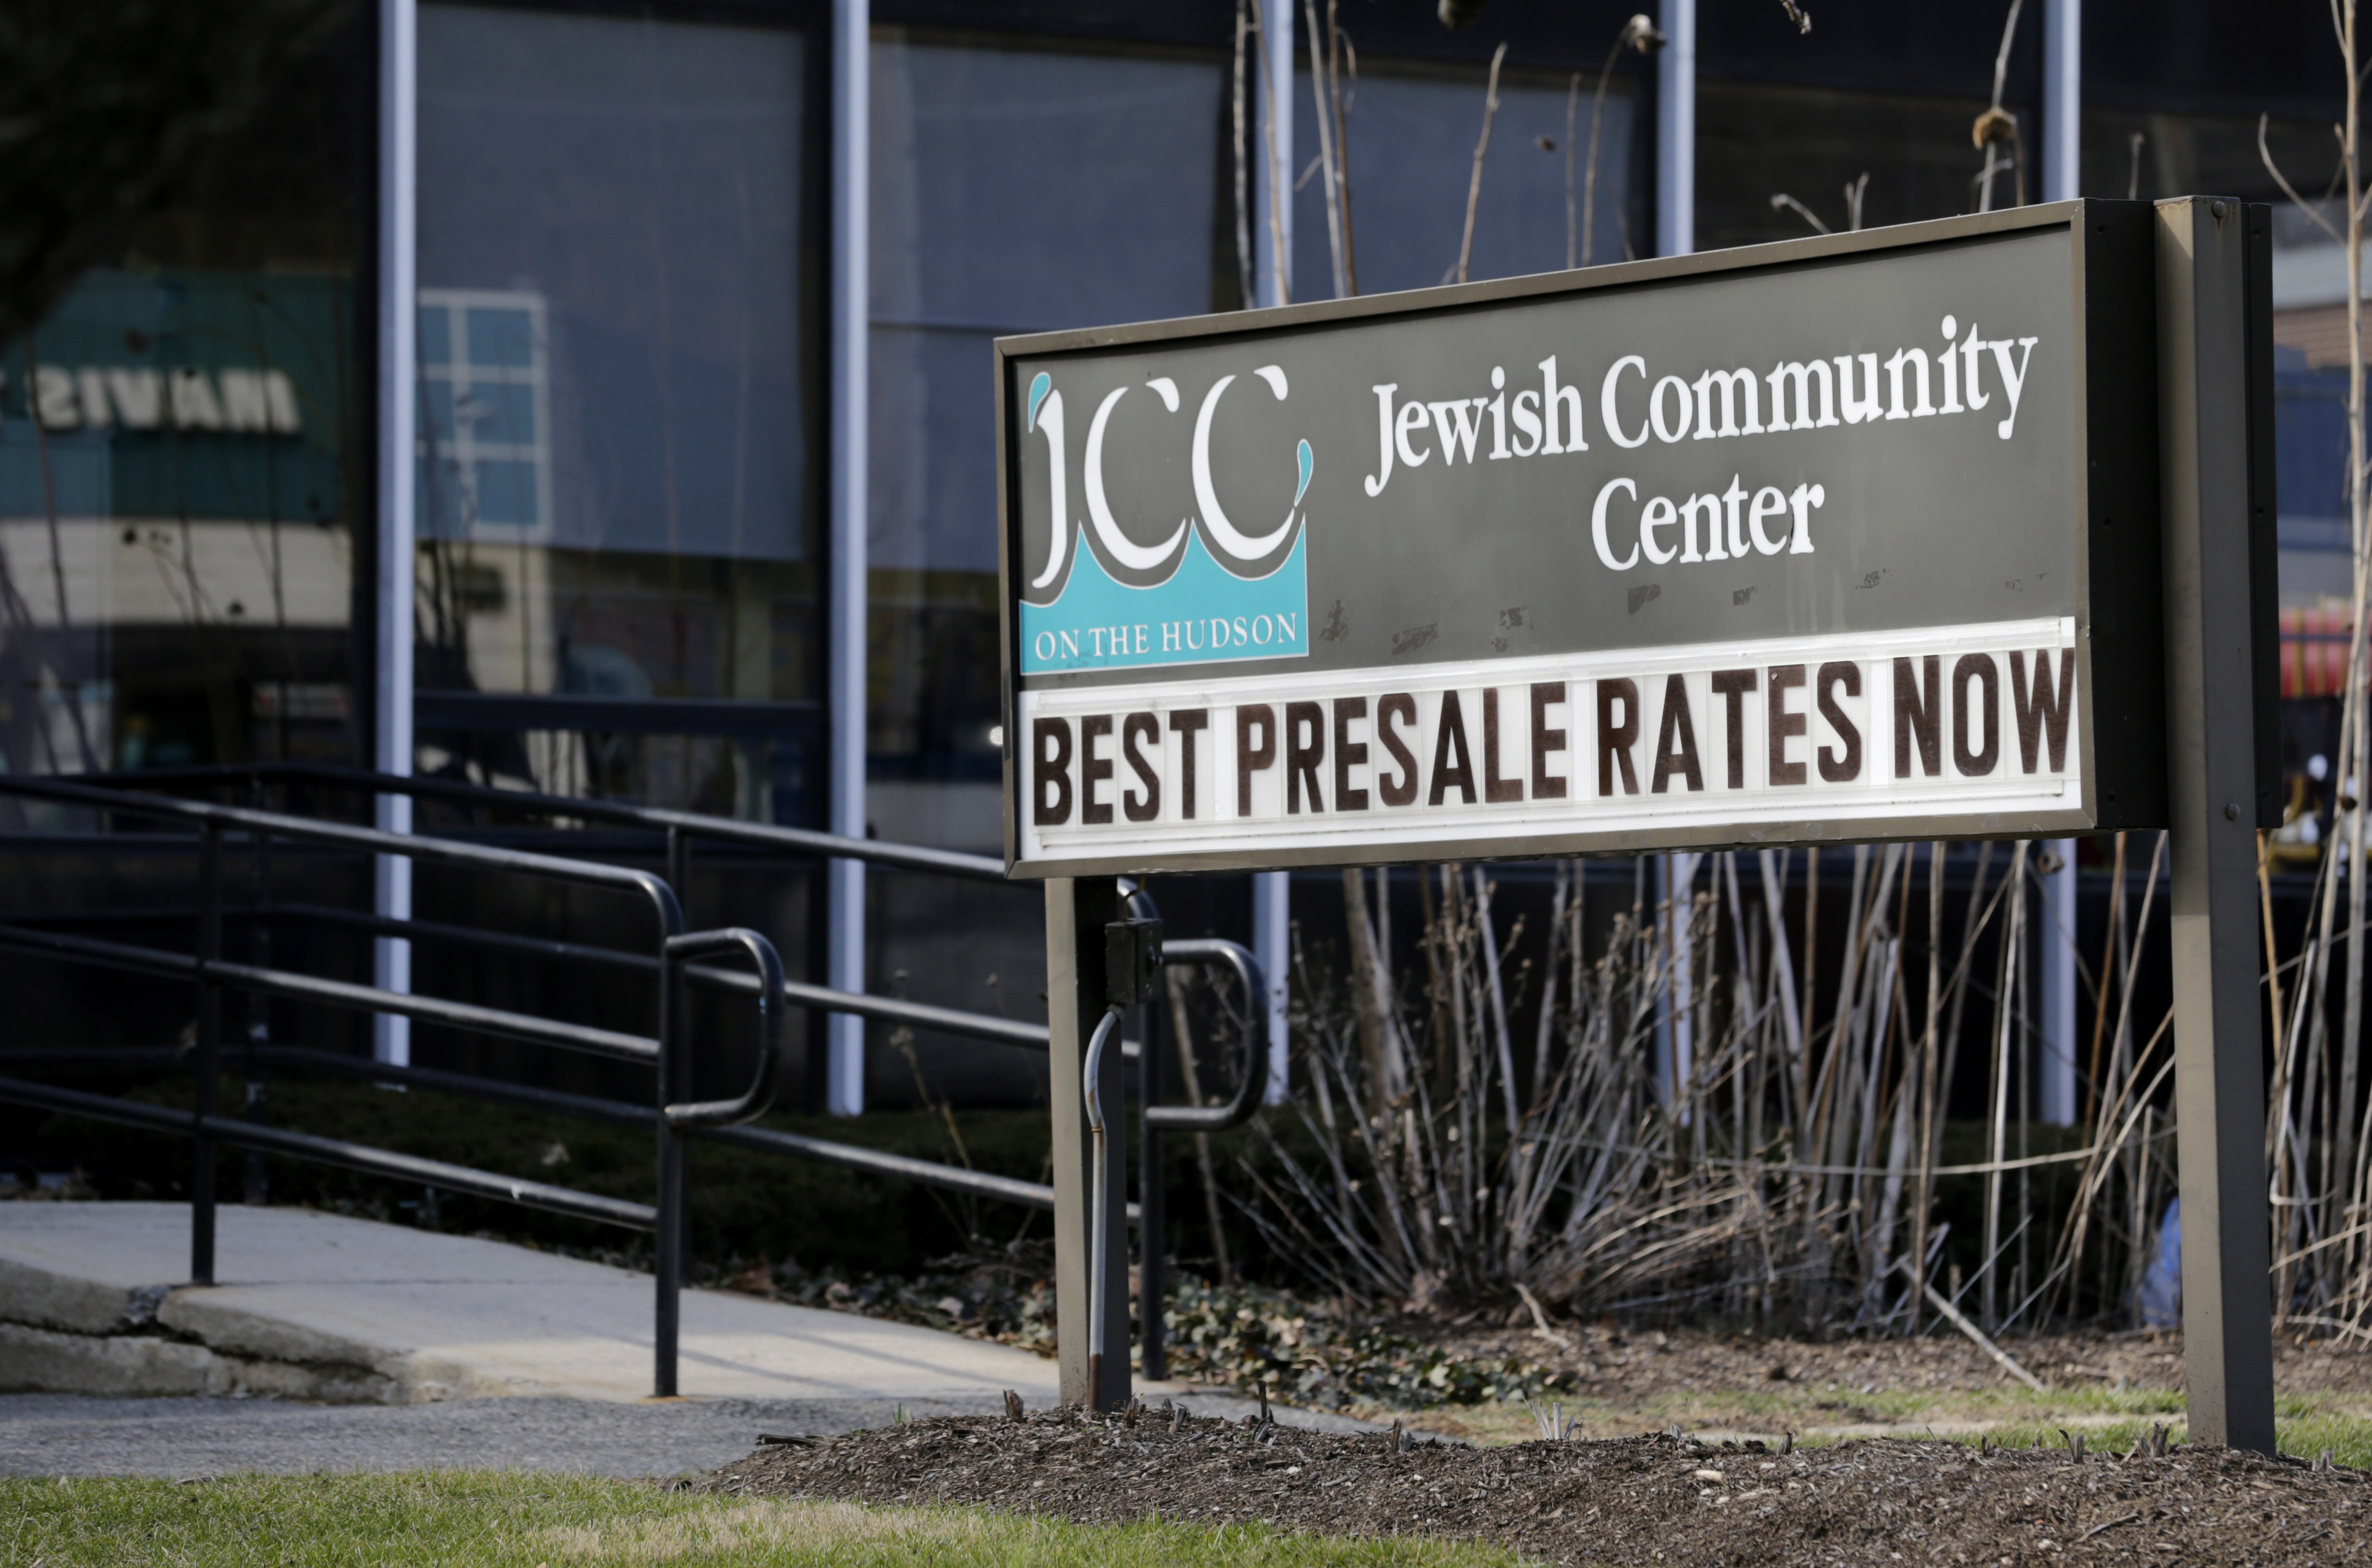 FILE - The Jewish Community Center is seen in Tarrytown, N.Y., Feb. 28, 2017. The latest in a wave of bomb threat hoaxes called into more than 20 Jewish community centers and schools across the country has again put administrators in the position of ...